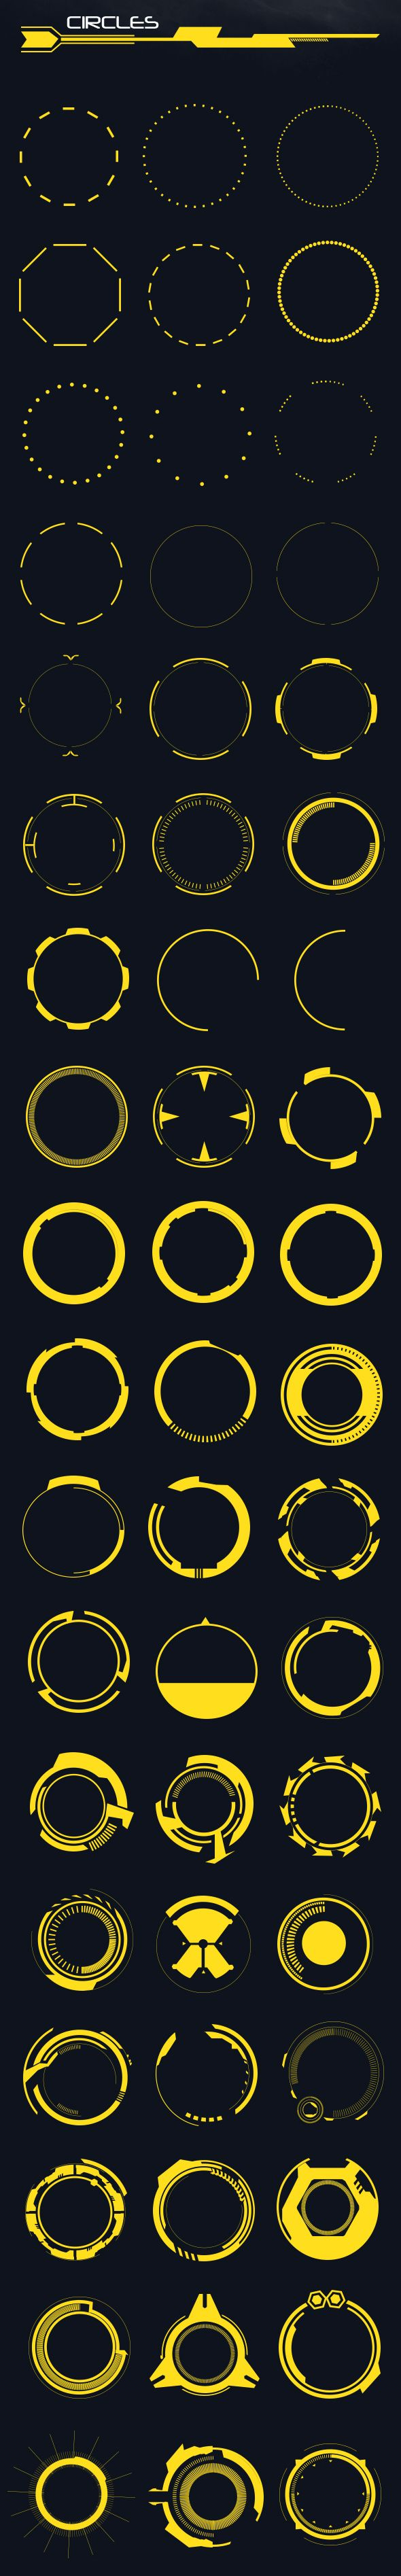 60 Hi-Tech Circles (Custom Shapes) - Shapes #Photoshop Download here: https://graphicriver.net/item/60-hitech-circles-custom-shapes/20461121?ref=alena994